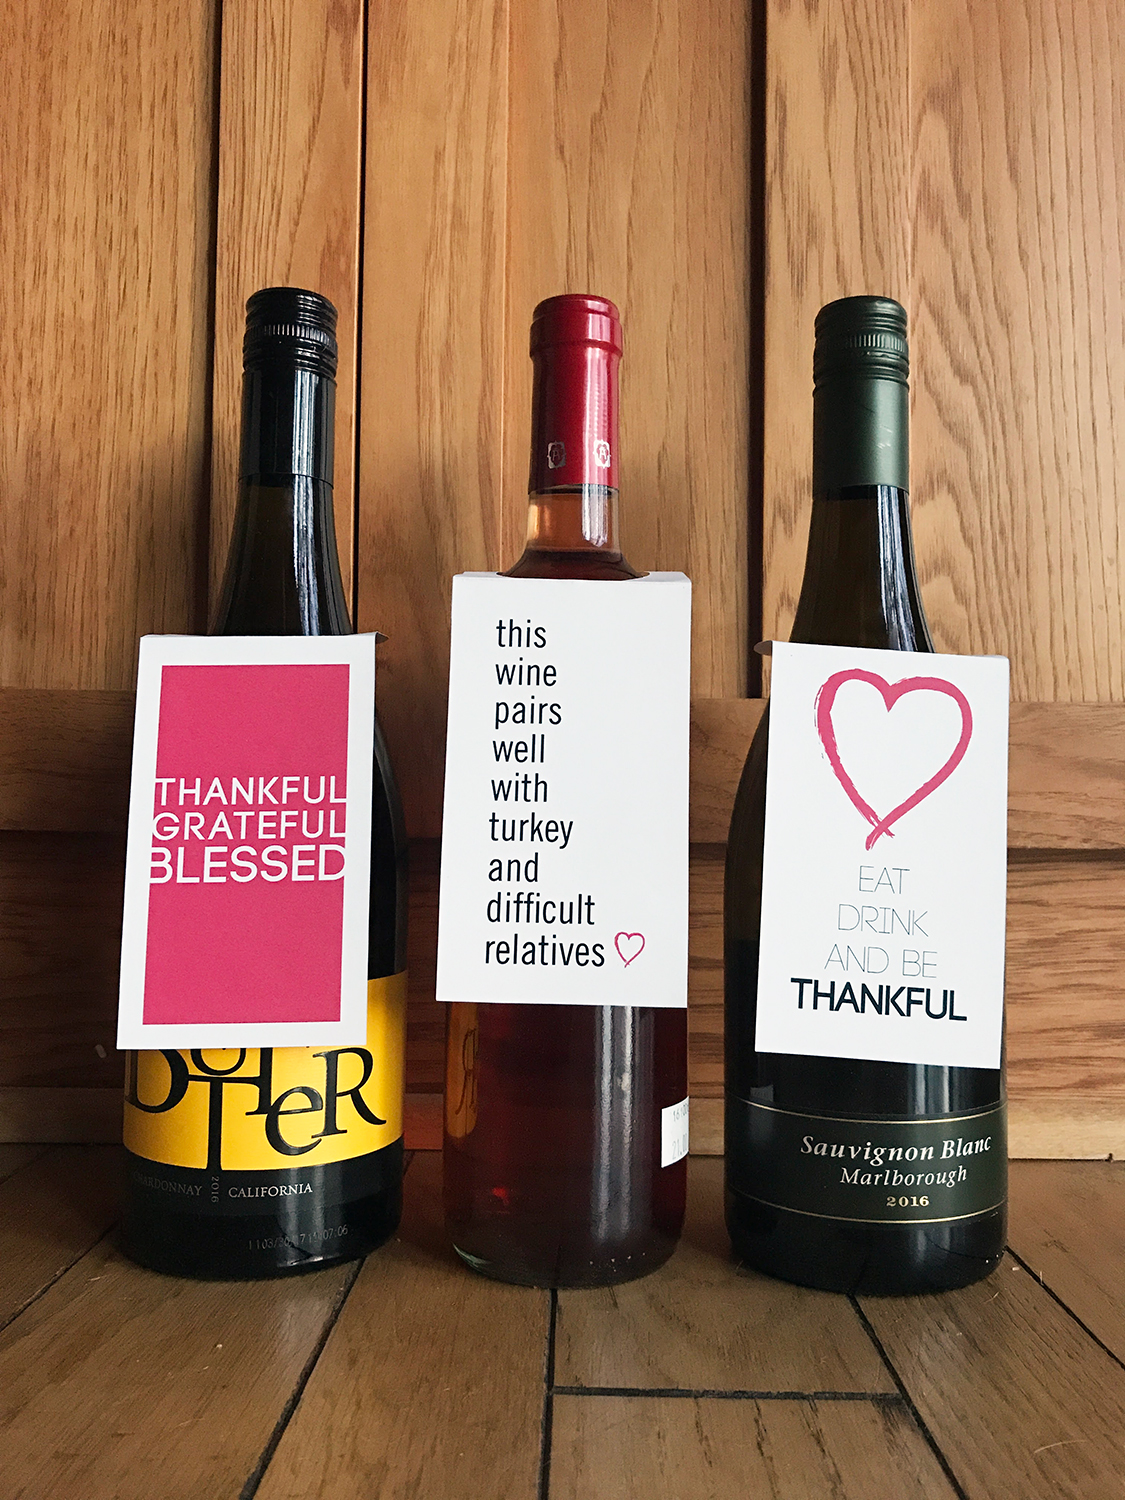 photo about Printable Wine Bottle Tags named Thanksgiving Printable Wine Bottle Tags Tomorrows In direction of Dos